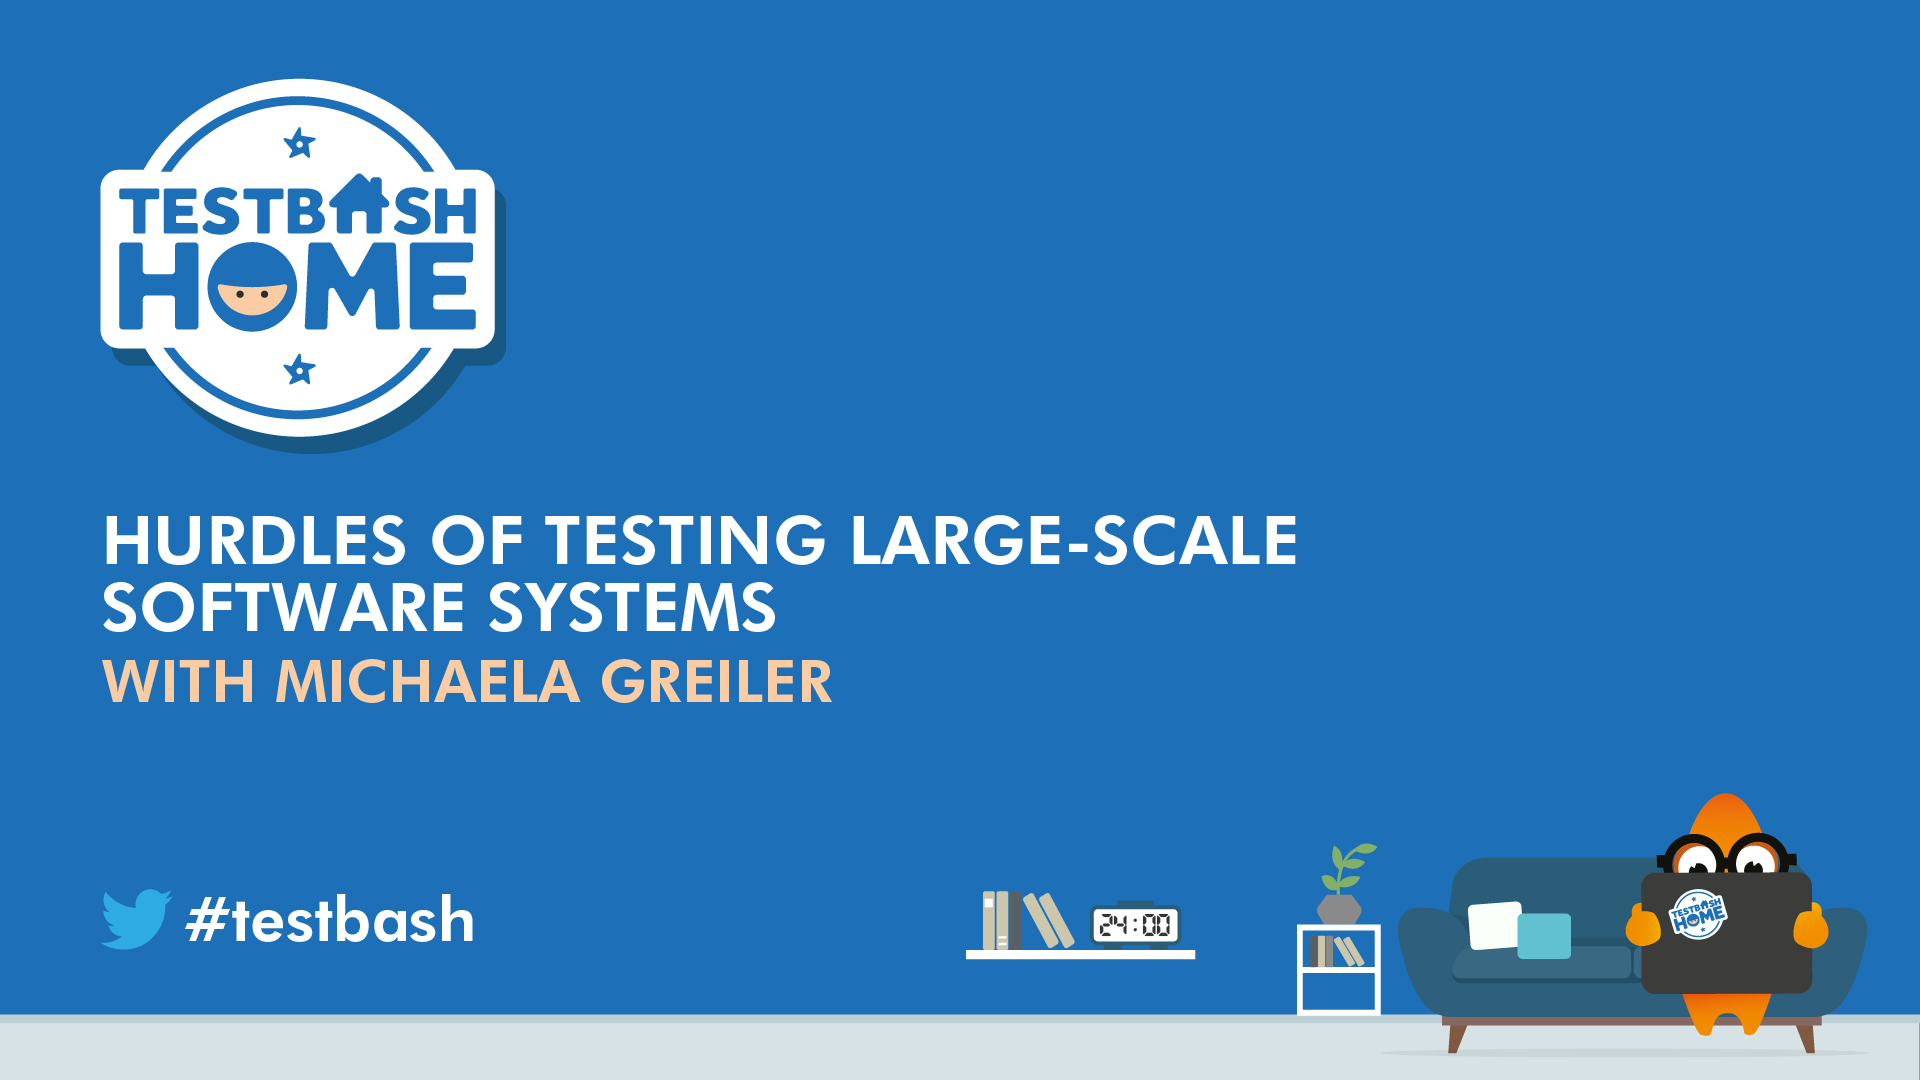 Hurdles of Testing Large-scale Software Systems - Michaela Greiler